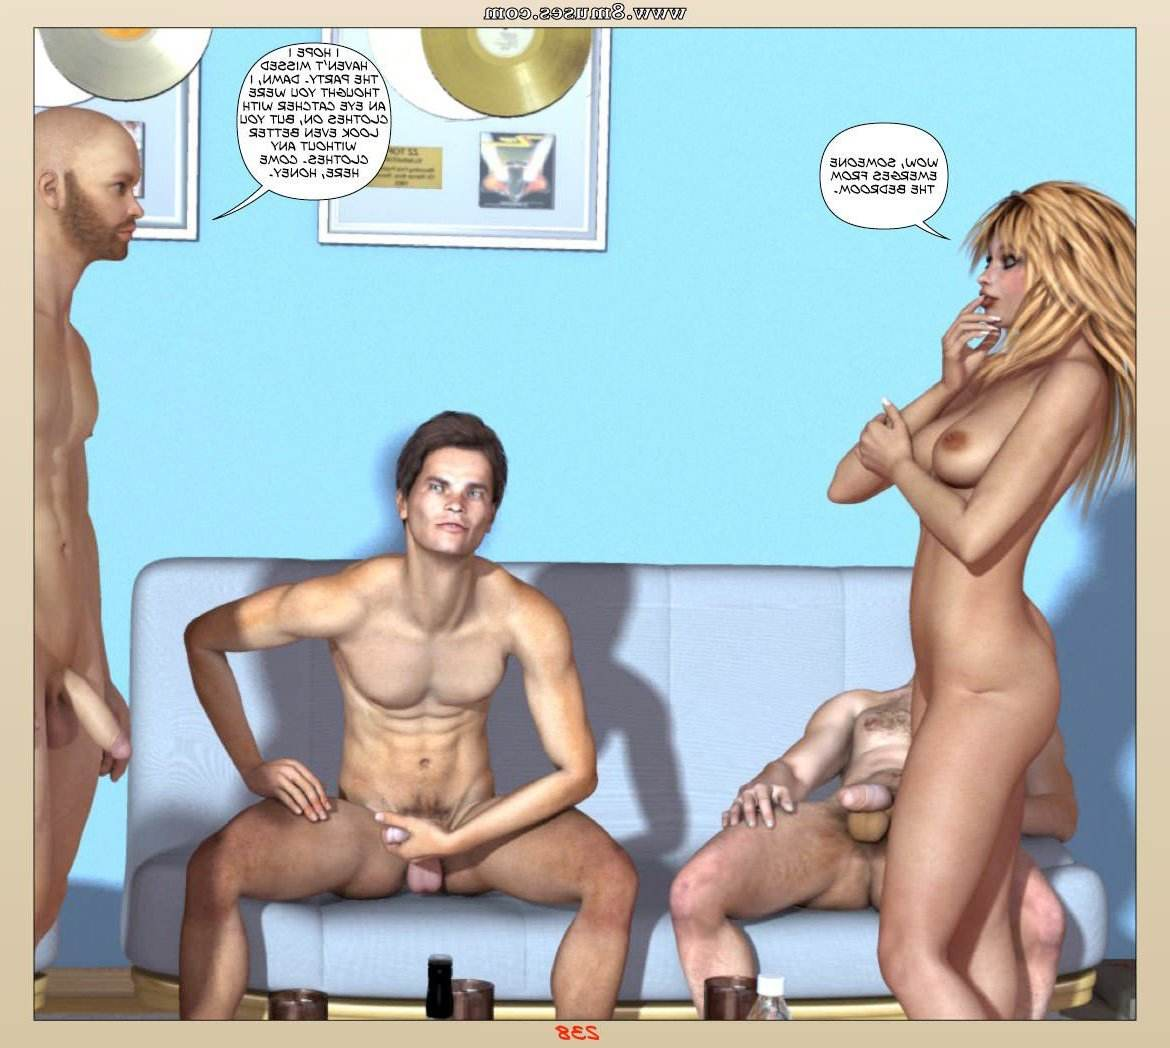 Digital-Empress-Captain-Trips-Comics/Odd-Jobs-Candra-Misky Odd_Jobs_-_Candra_Misky__8muses_-_Sex_and_Porn_Comics_238.jpg